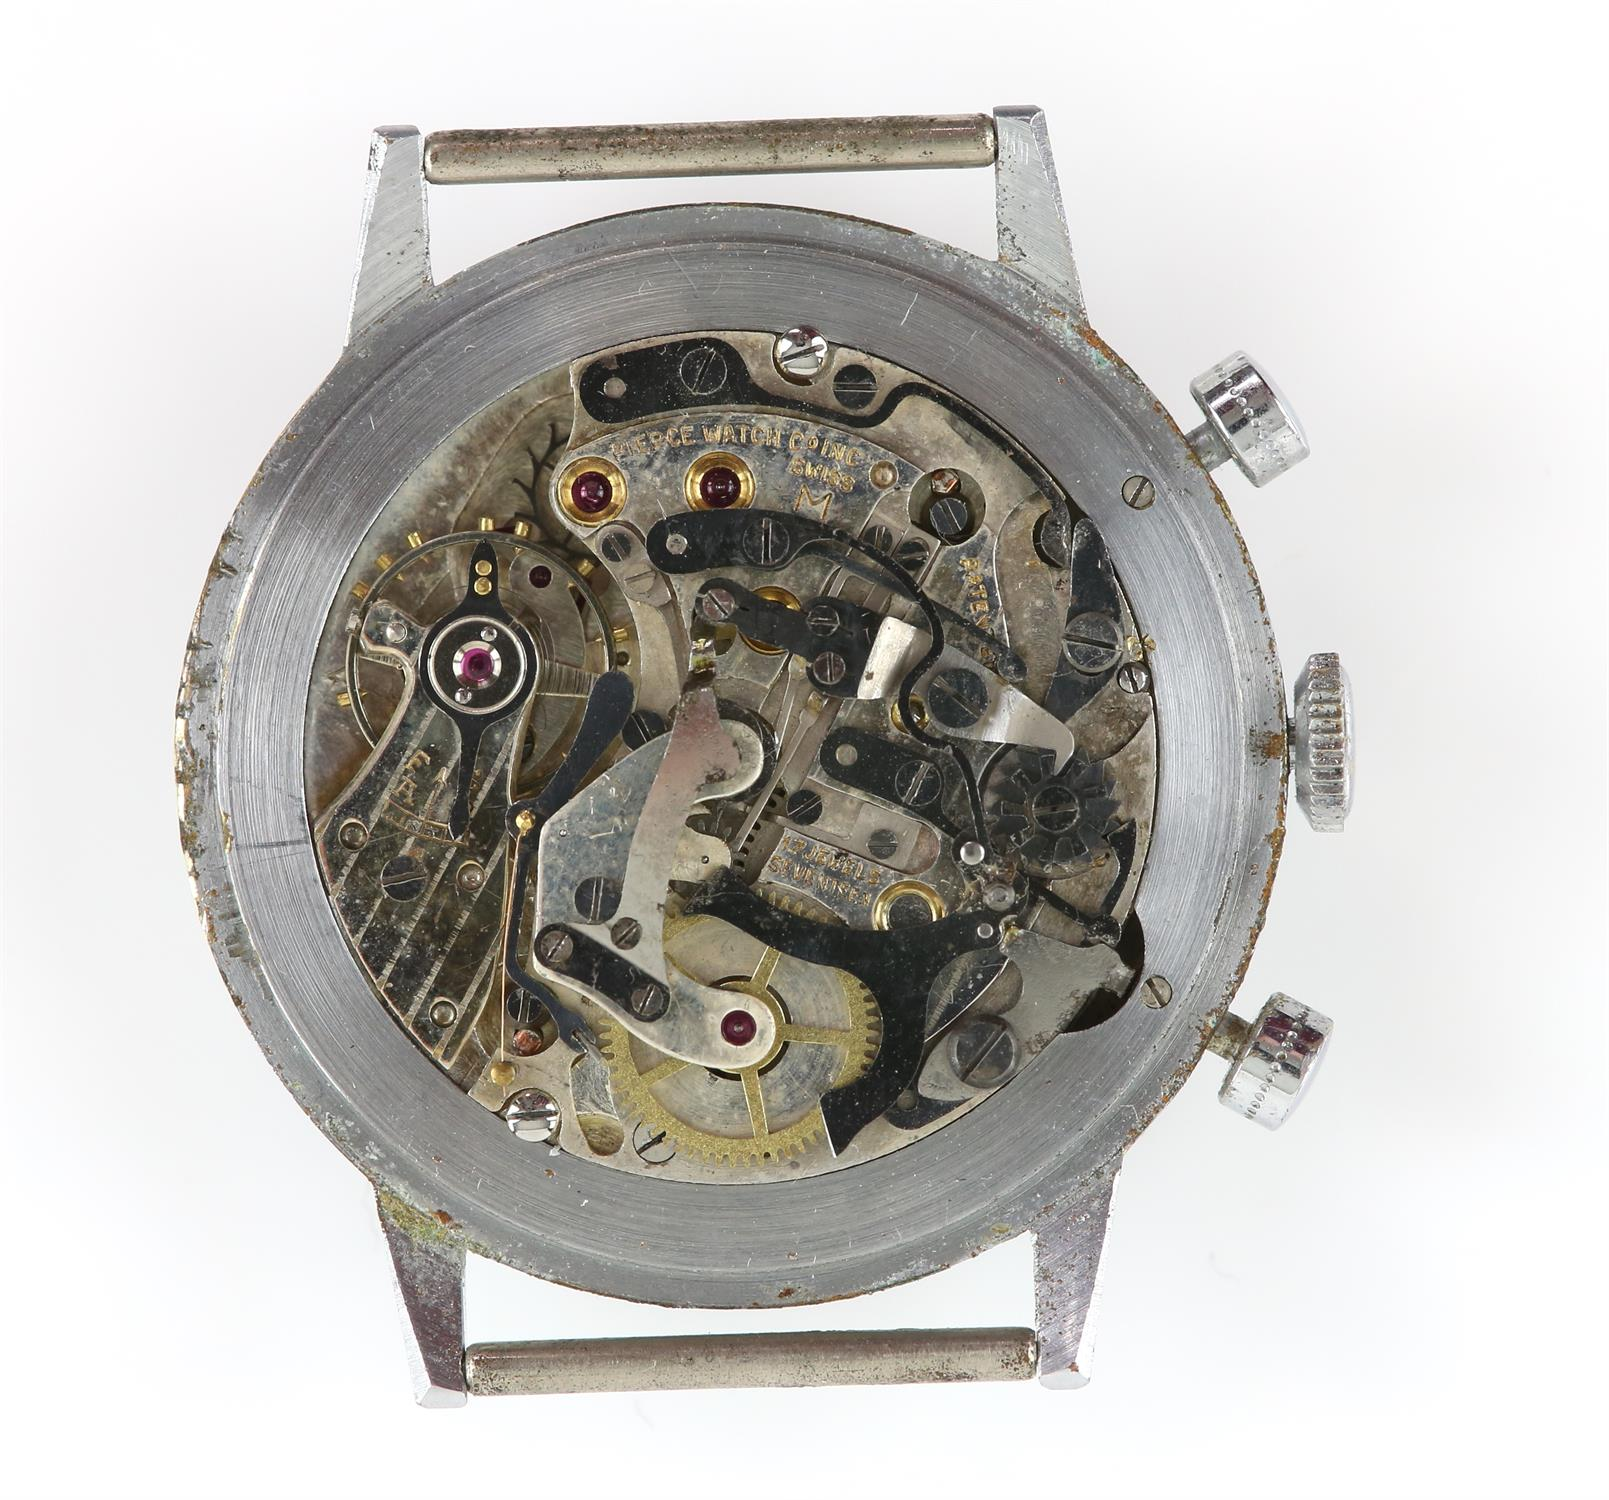 Pierce A Gentleman's stainless steel up down chronograph wrist watch, the dial signed Pierce Fab - Image 2 of 2